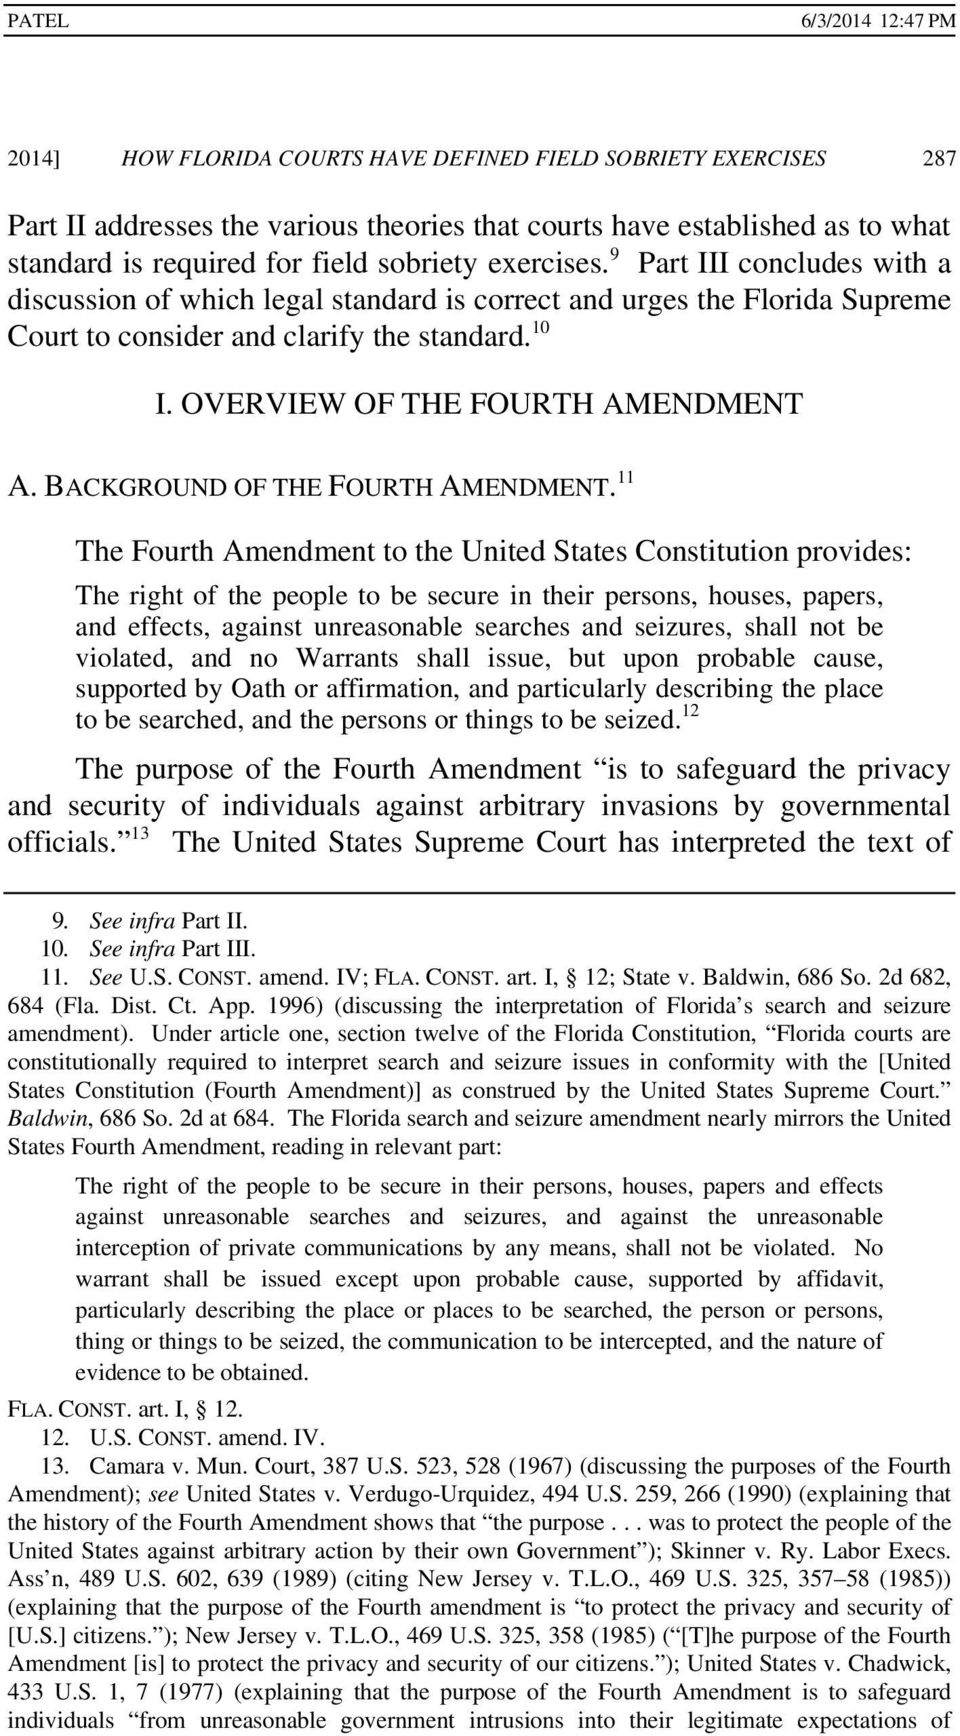 BACKGROUND OF THE FOURTH AMENDMENT.